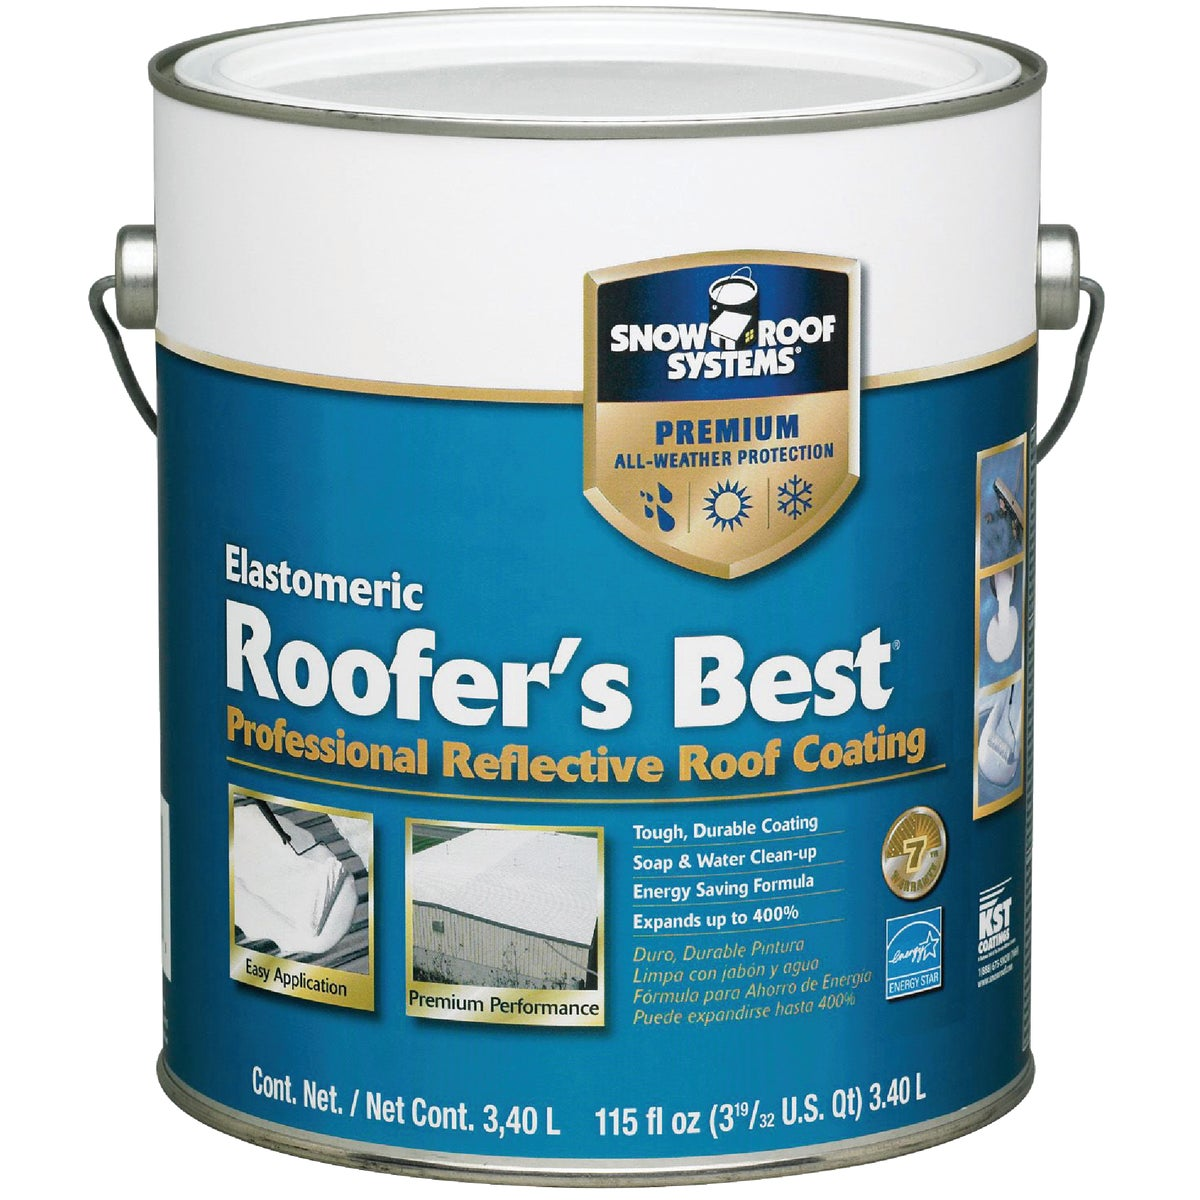 GAL REFLECT ROOF COATING